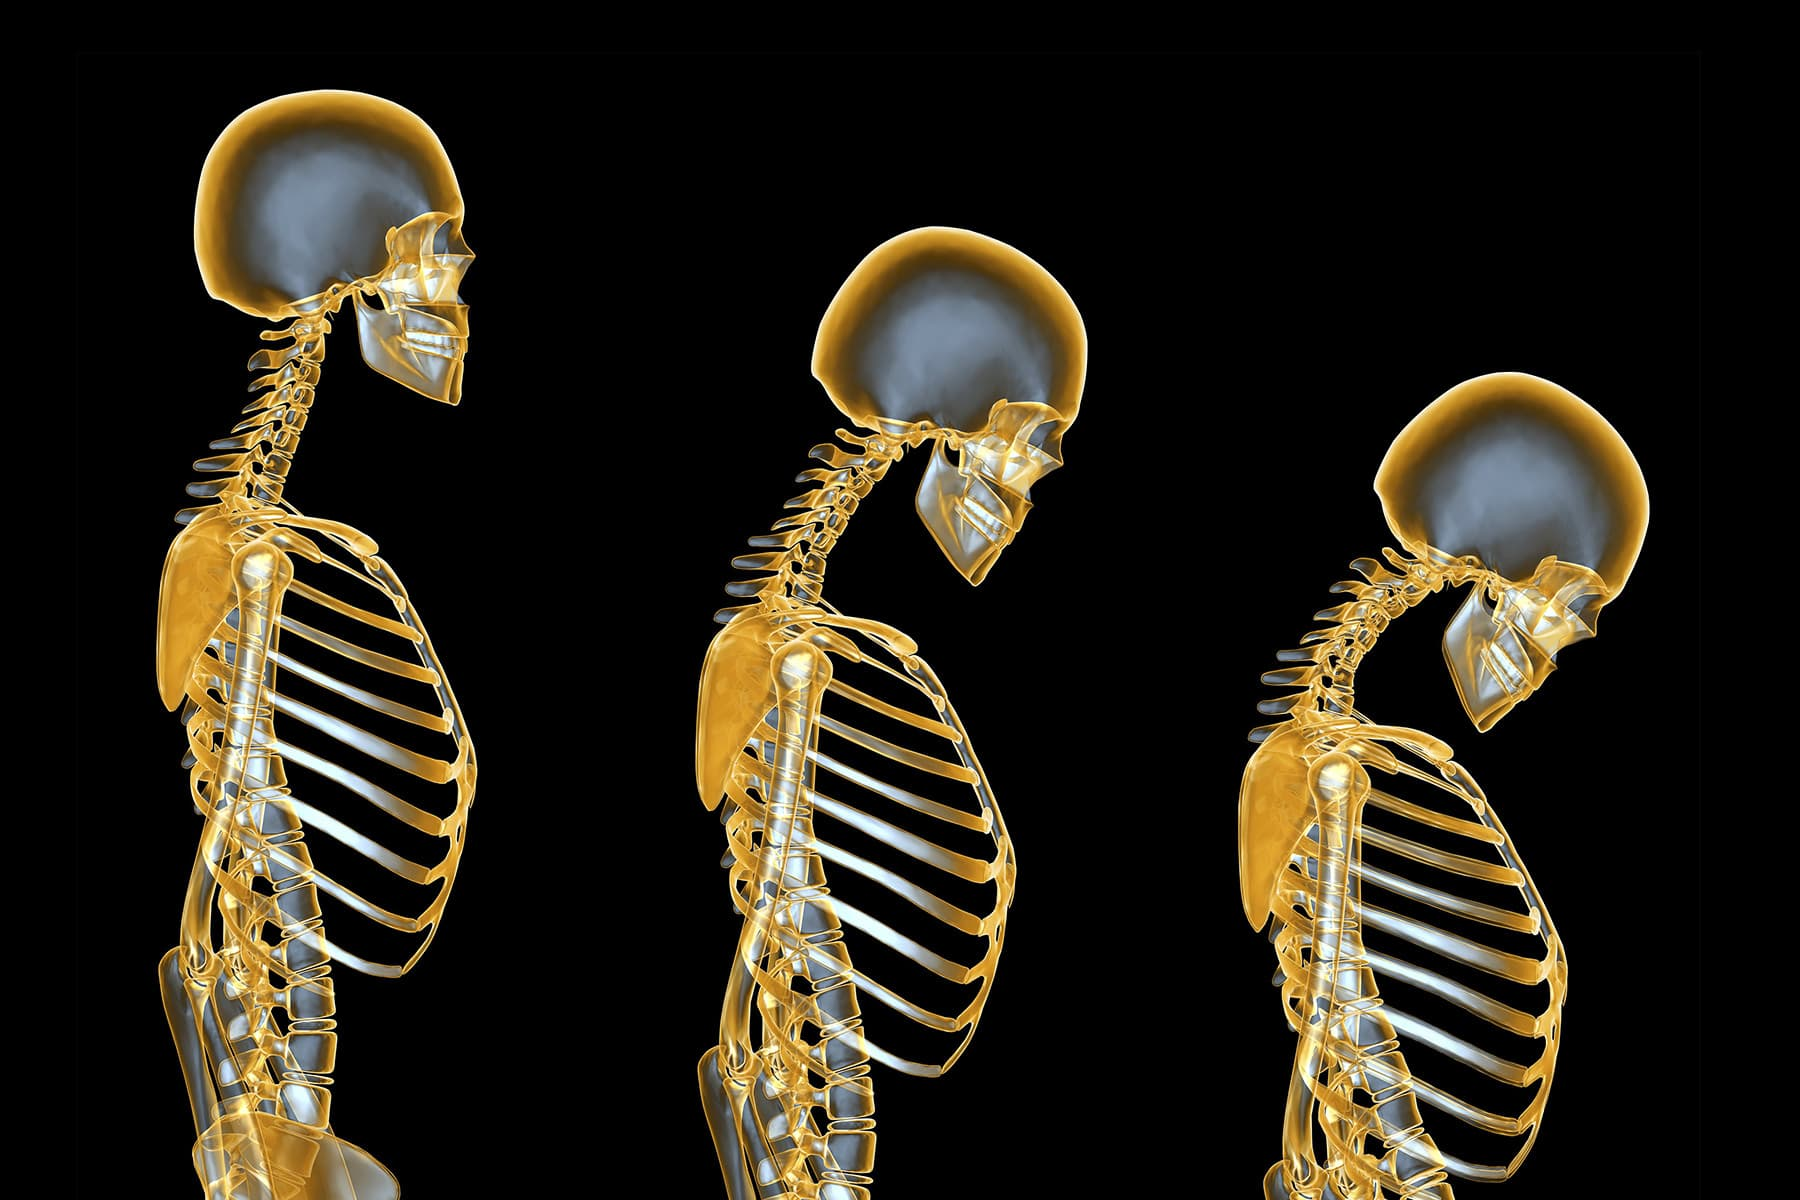 Pictures of Osteoporosis